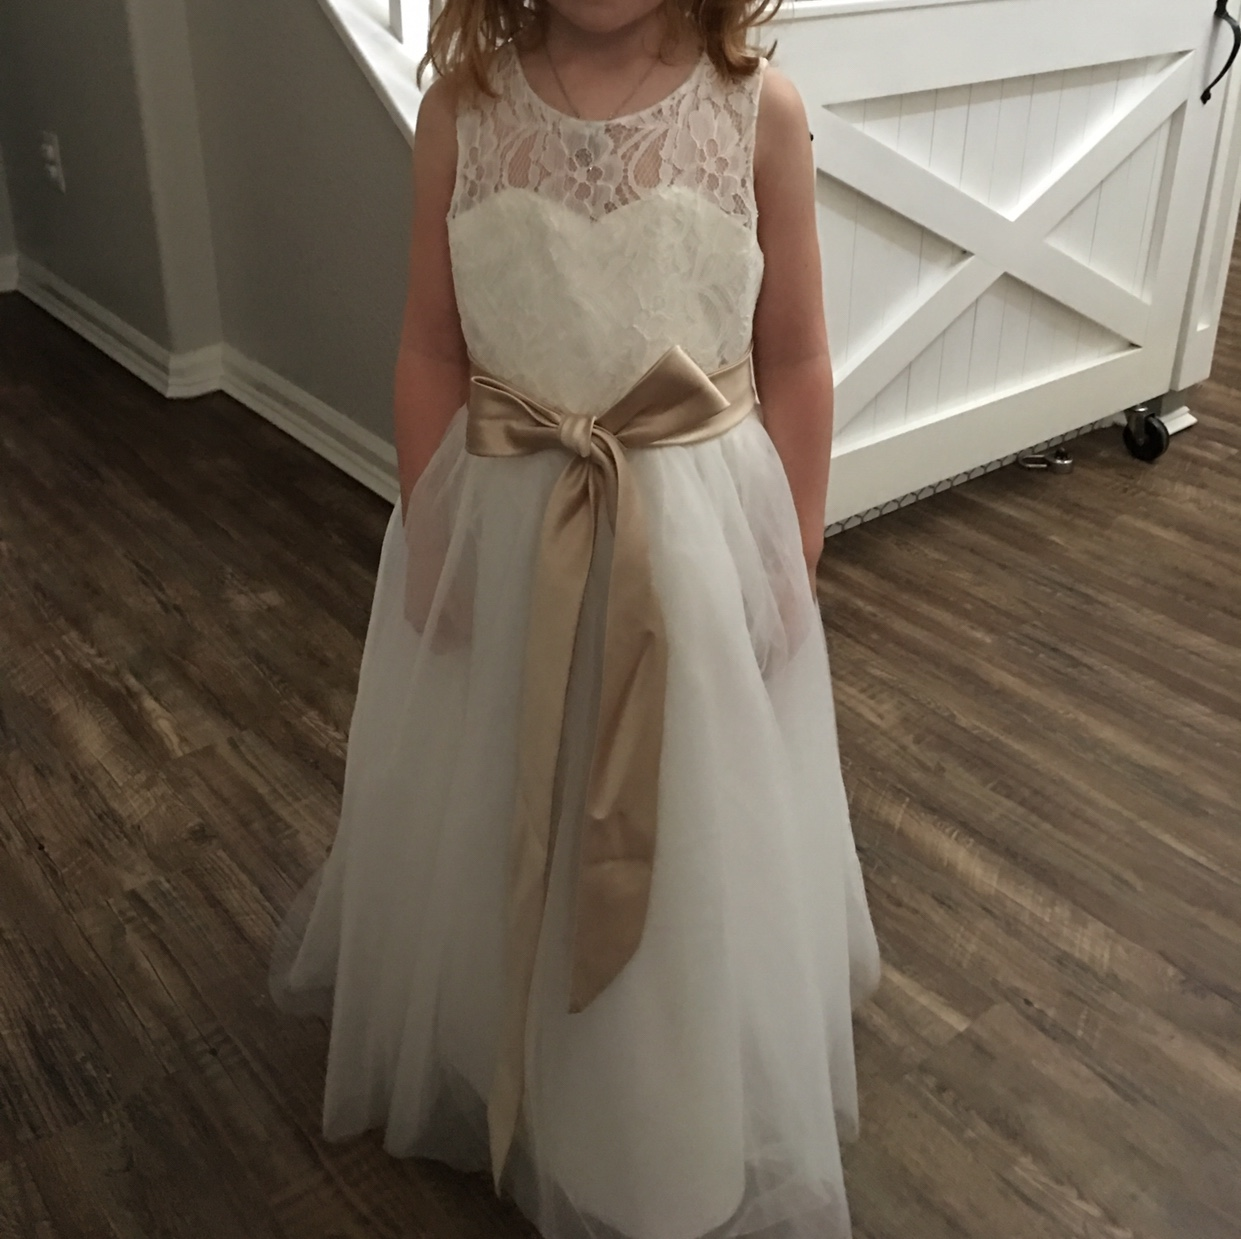 A-Line/Princess Tea-length Flower Girl Dress - Tulle/Lace ... - photo#23